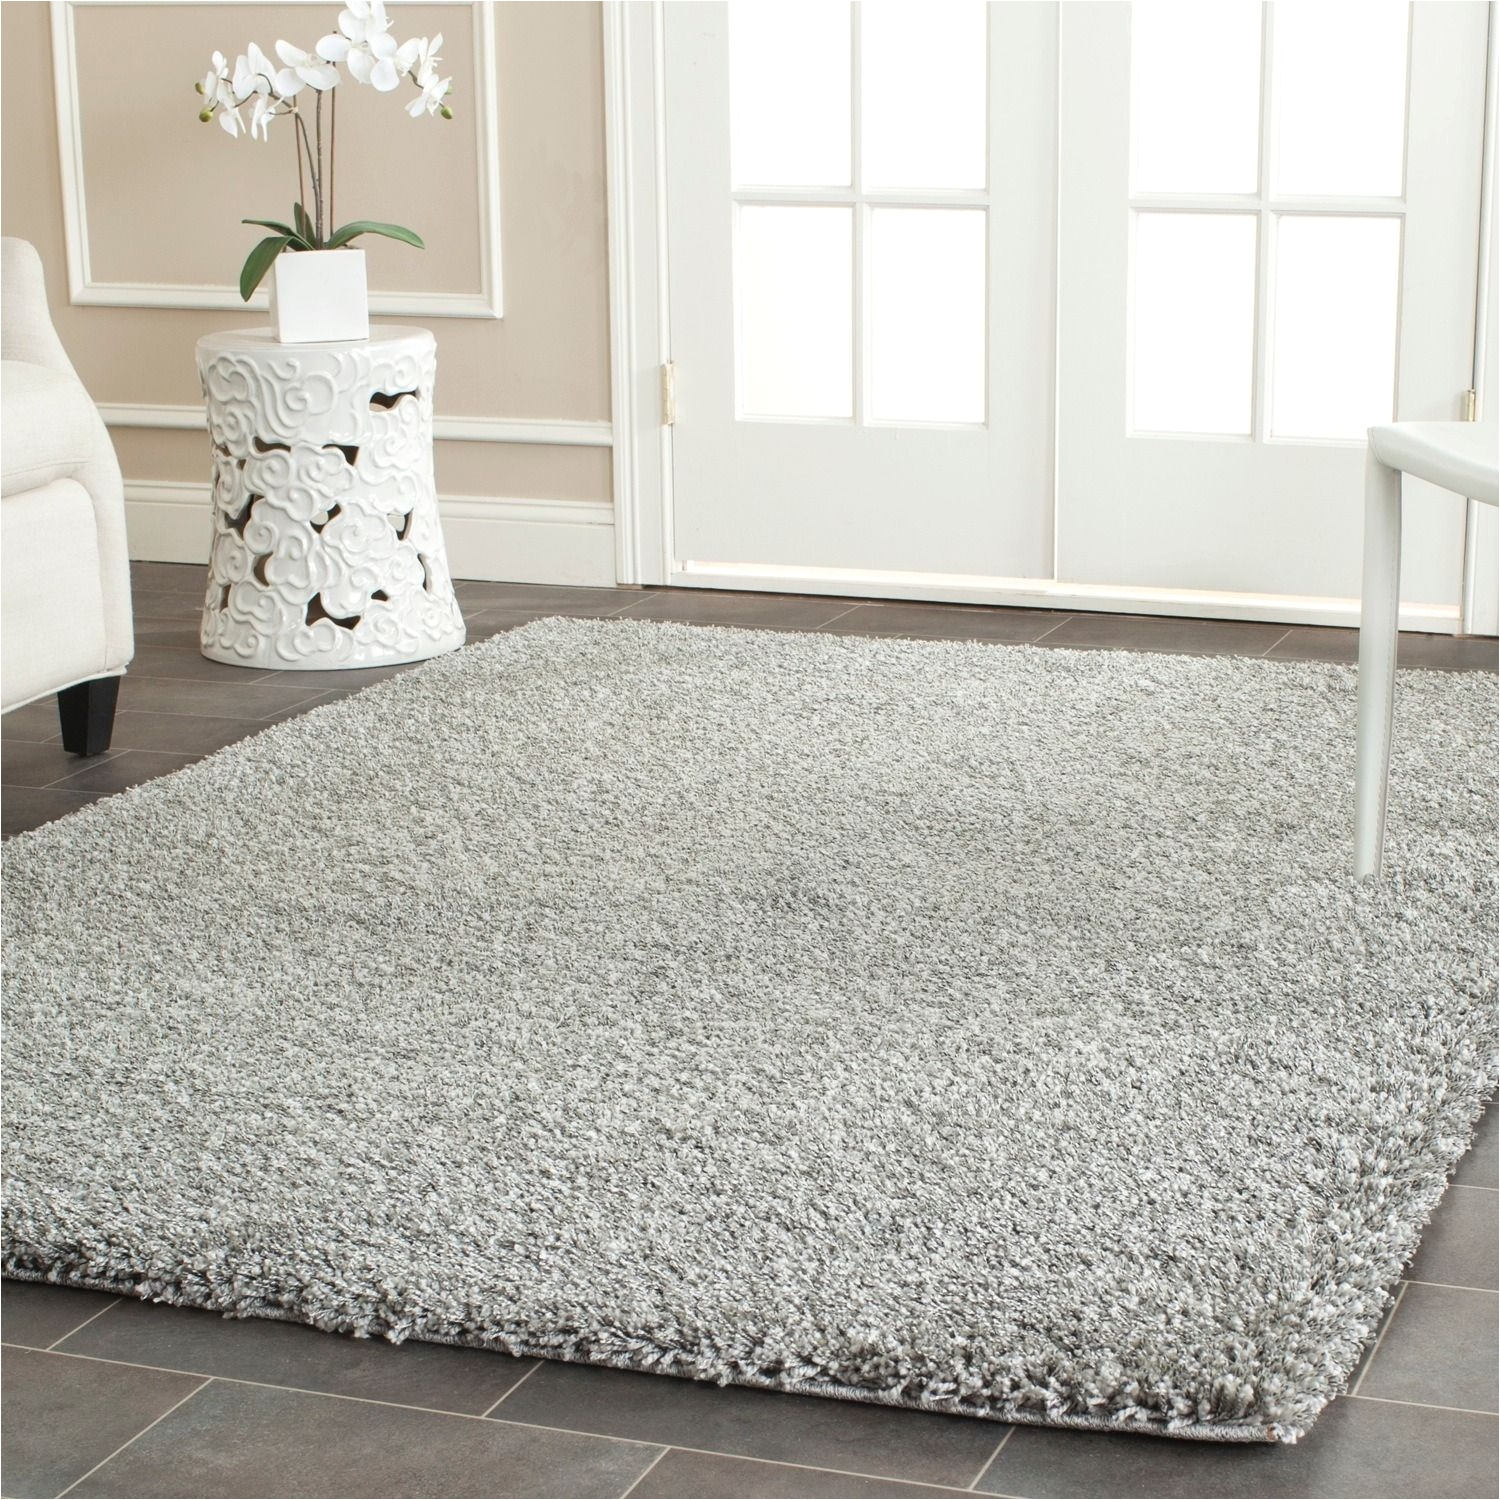 rugs curtains grey for mesmerizing interior floor decor exciting outdoor round ikea gaser rug beach style